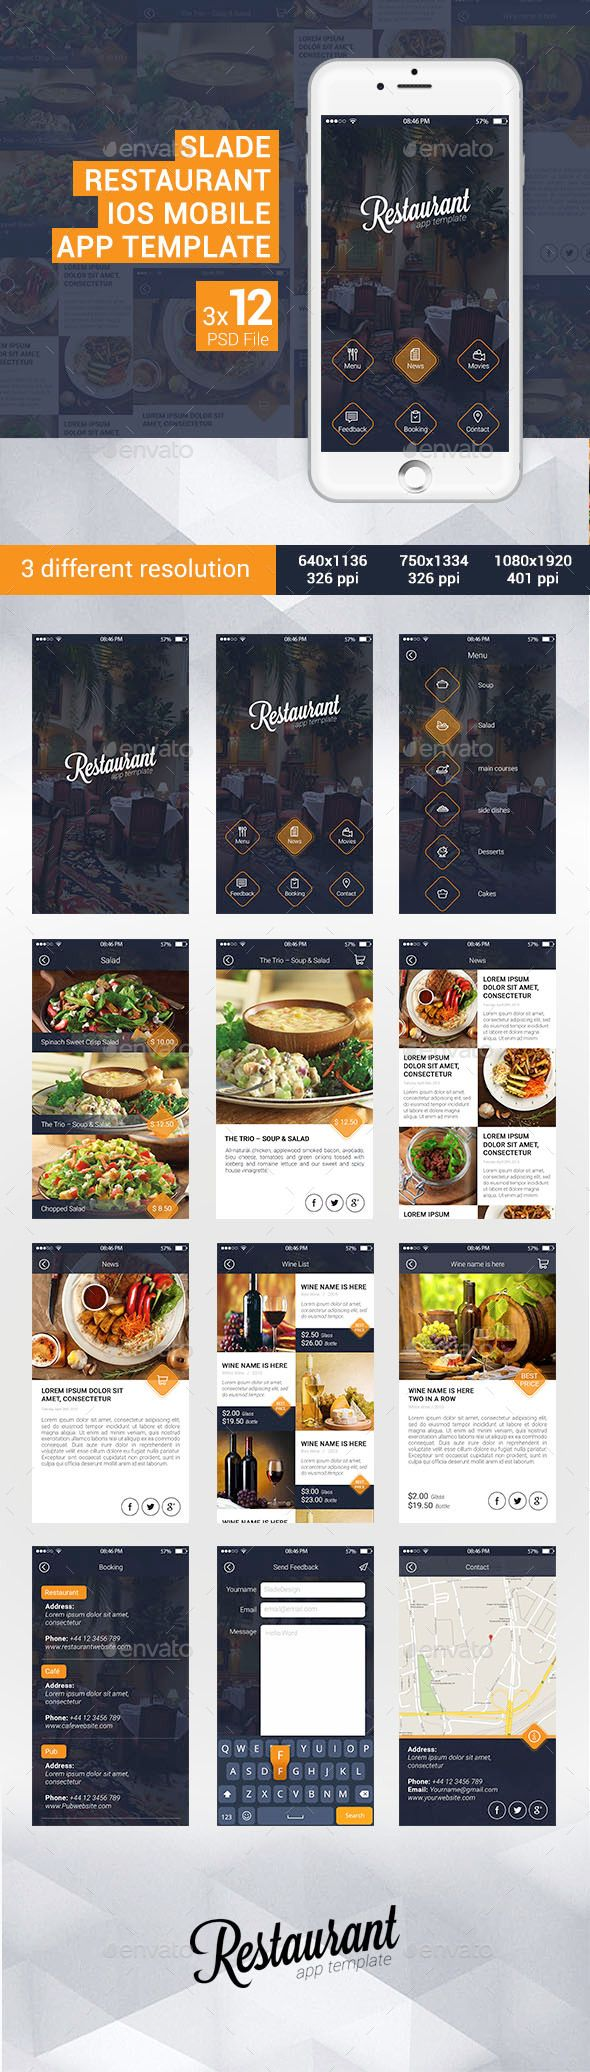 Slade restaurant ios mobile app template